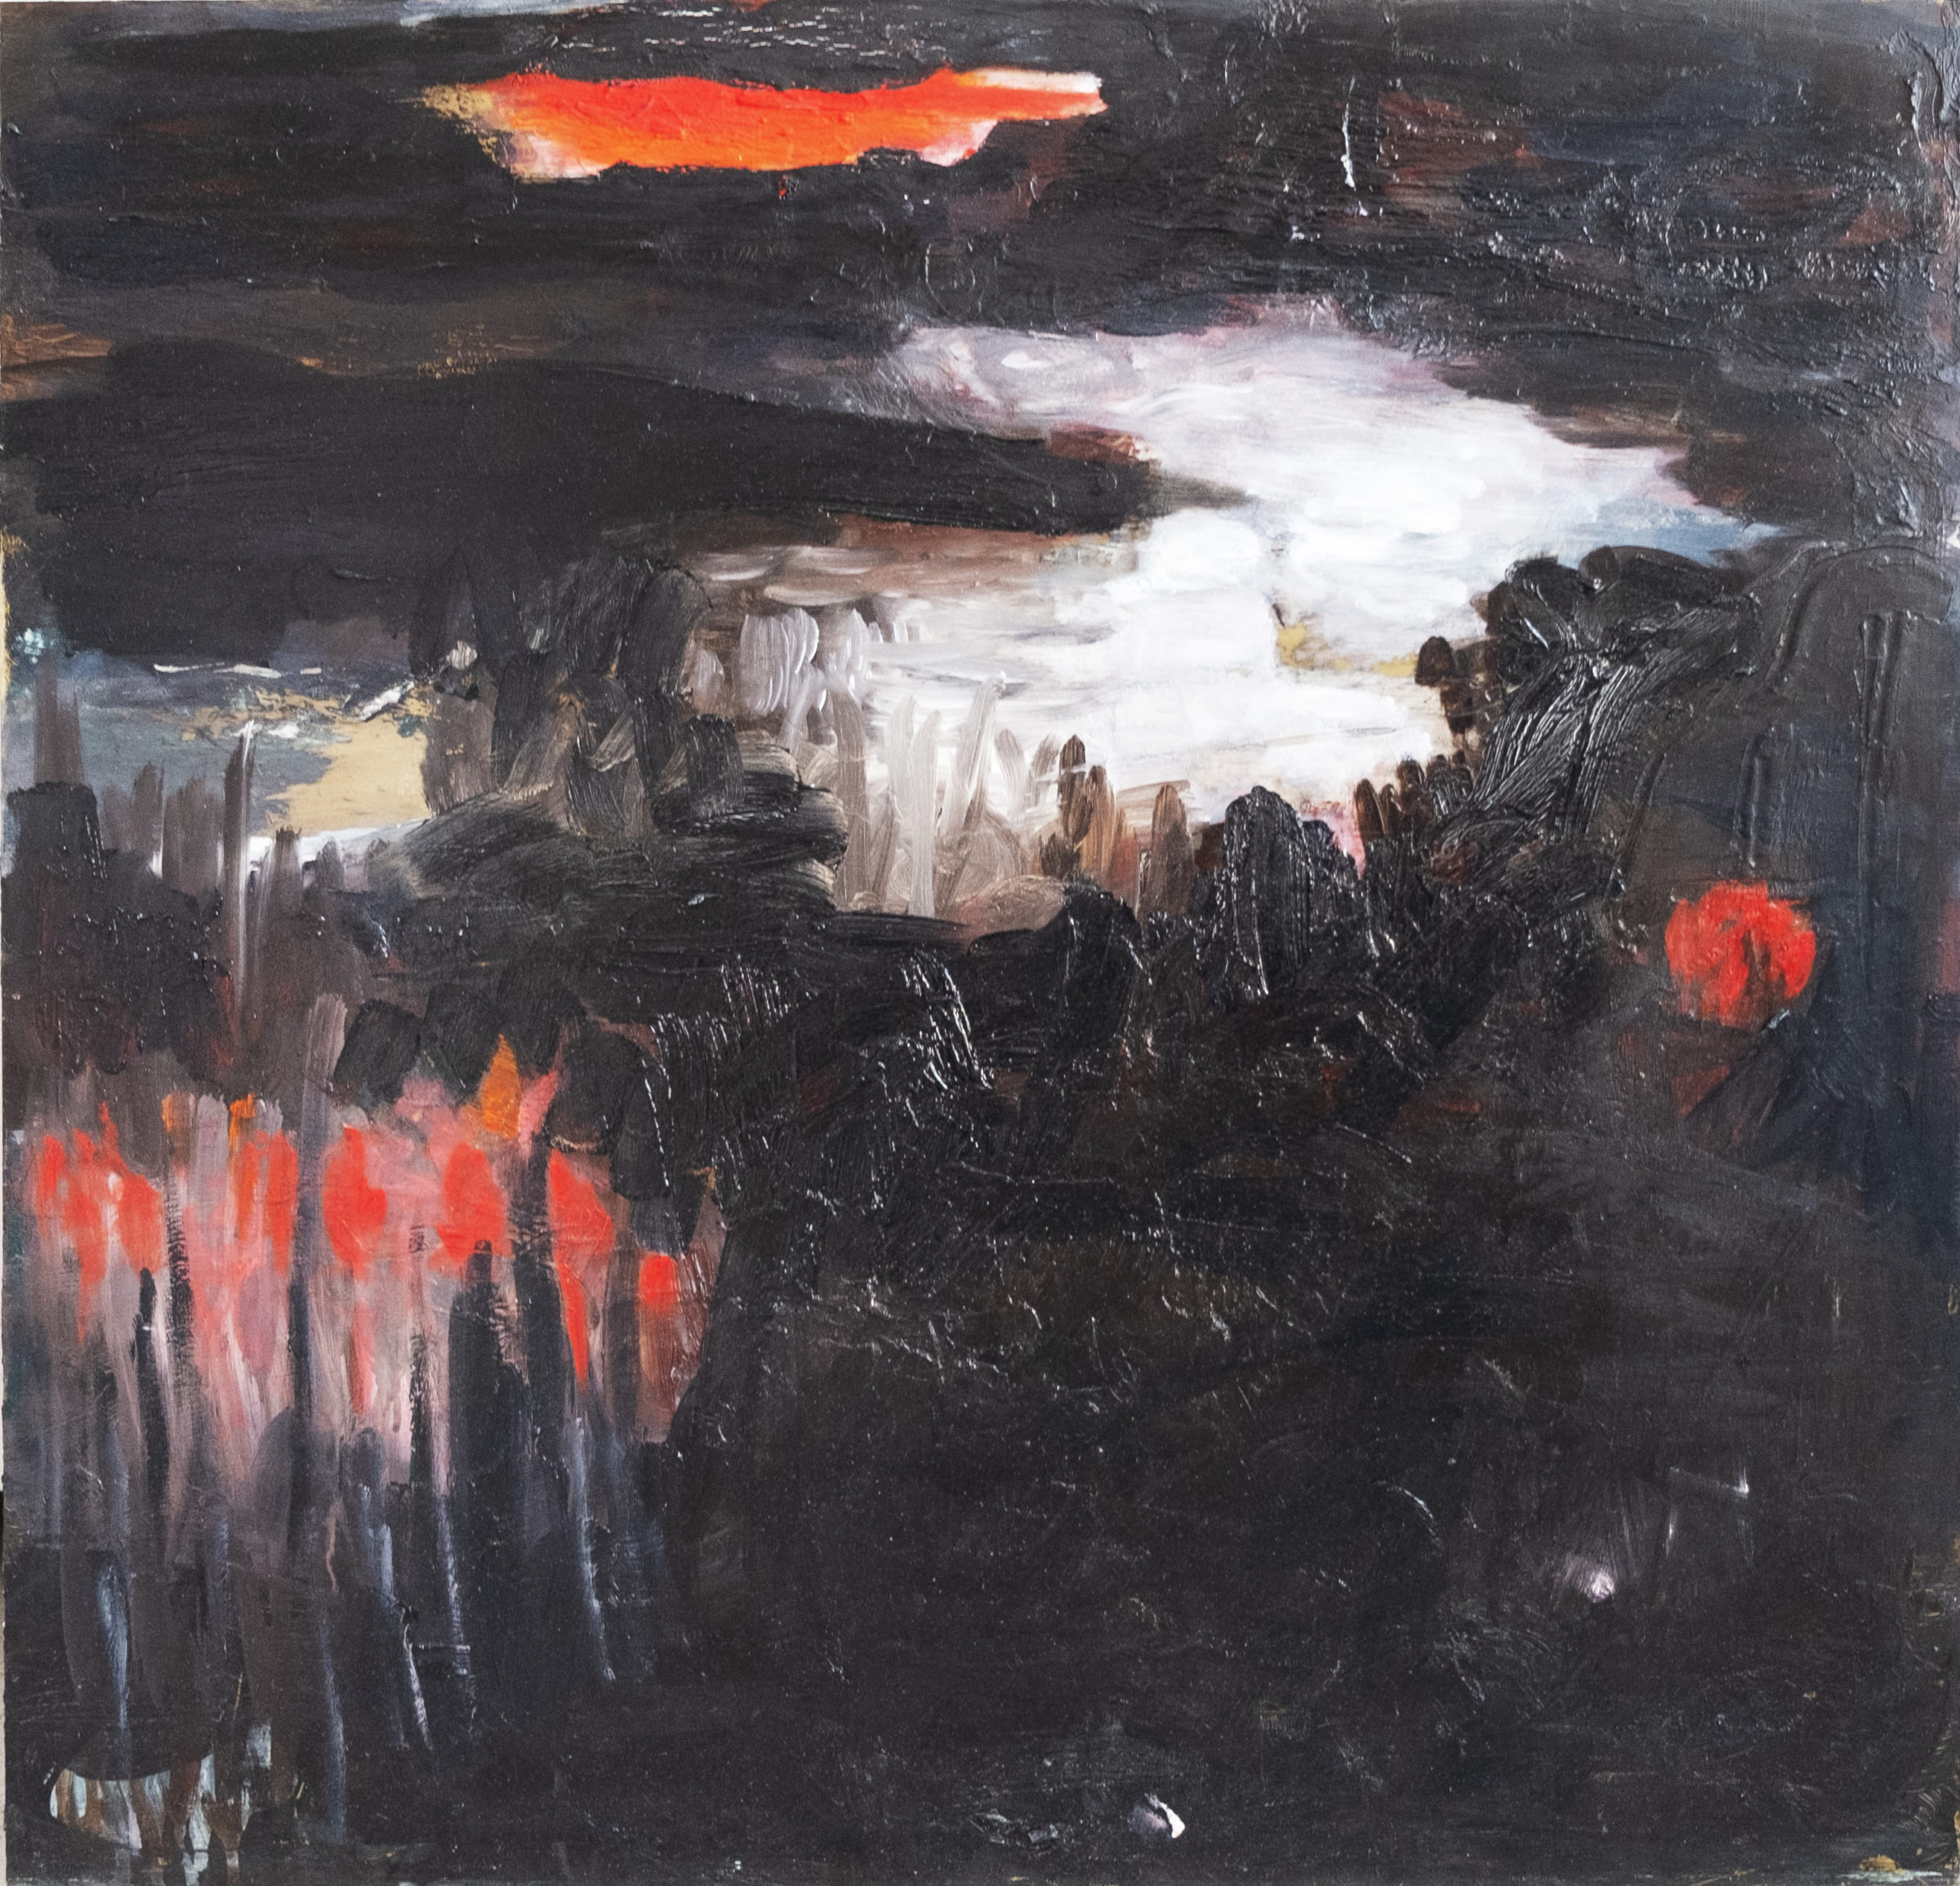 Night, olja på mässing, 60x60 cm, 2019